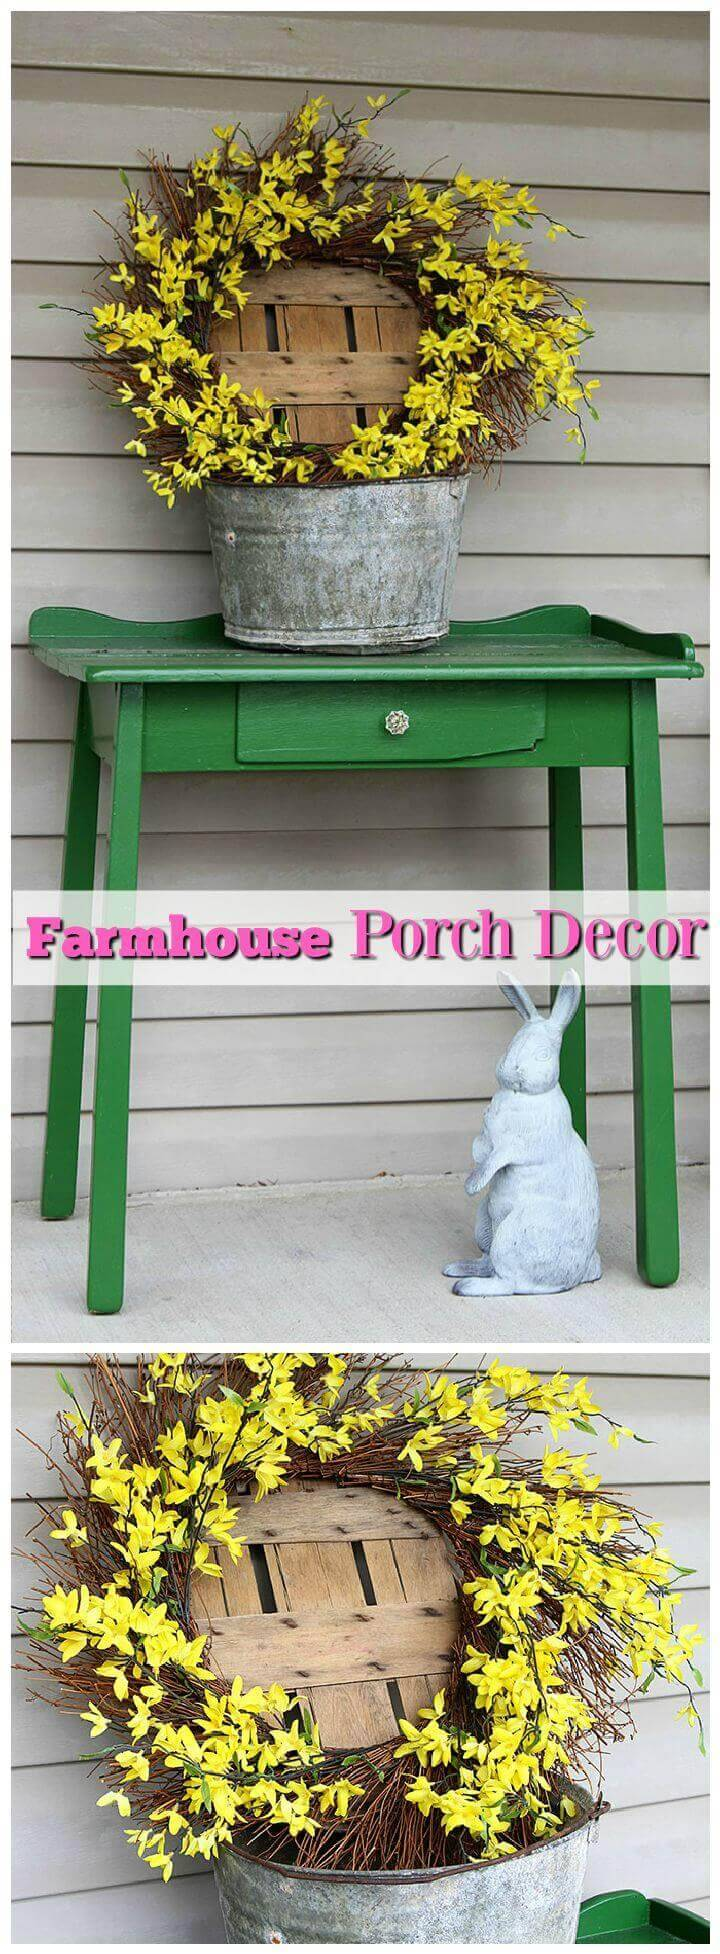 Farmhouse Porch Decor